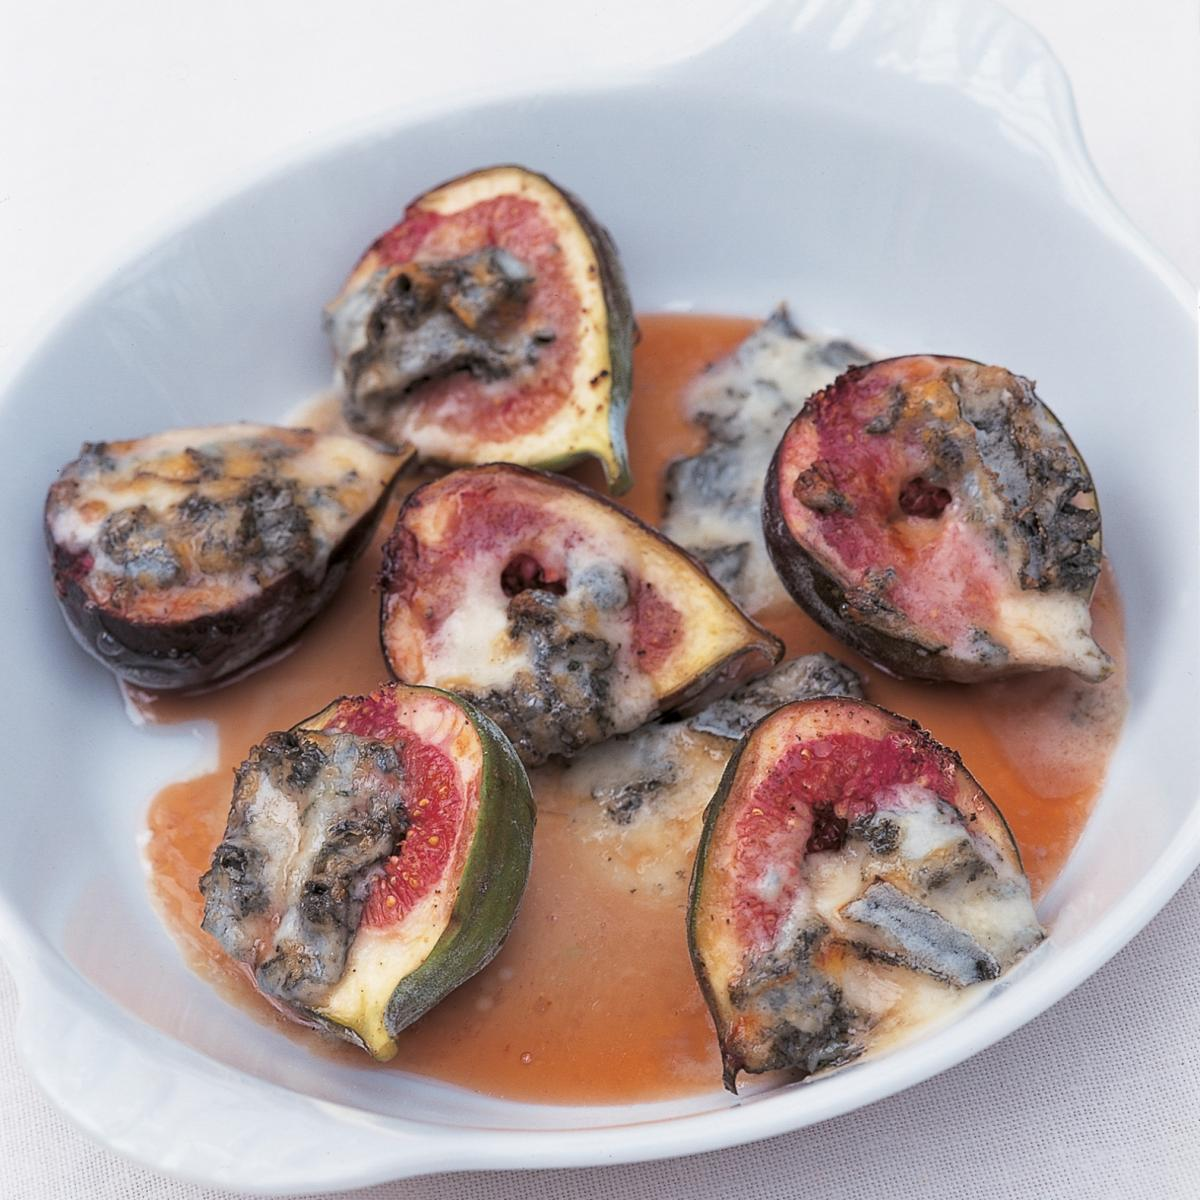 Htc roasted figs with gorgonzola and honey vinegar sauce